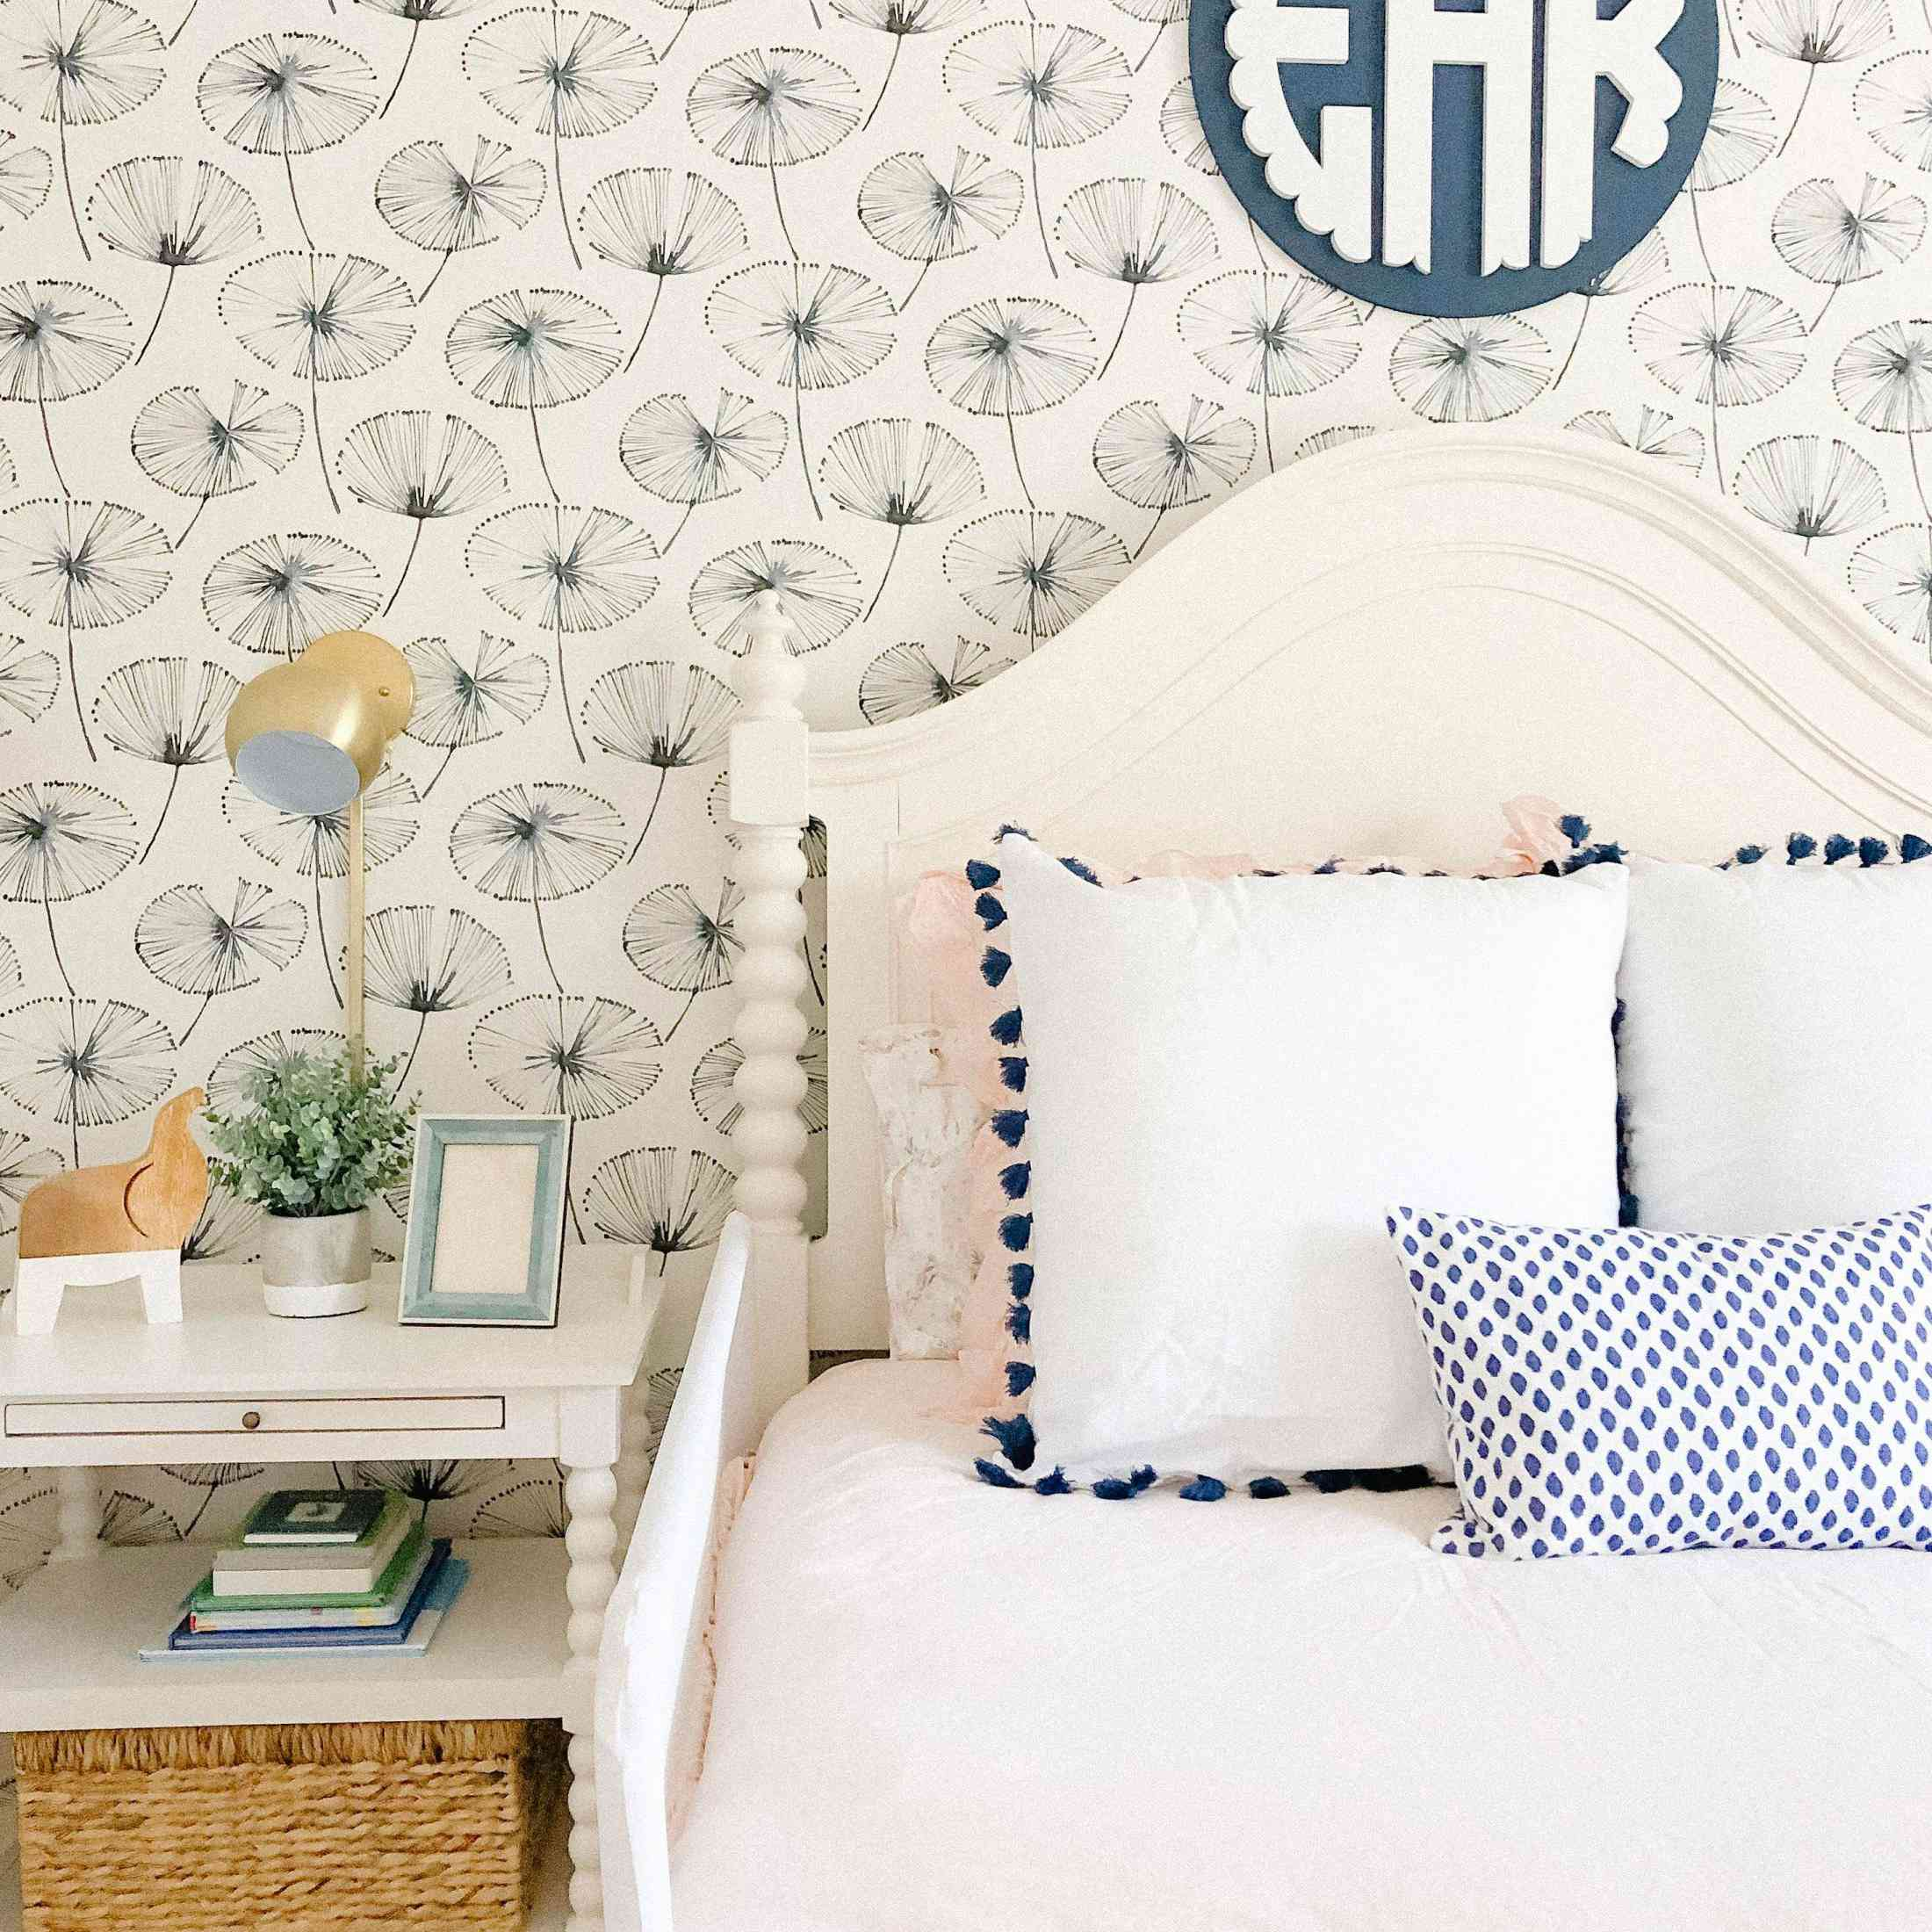 Girl's room with monogram above bed.